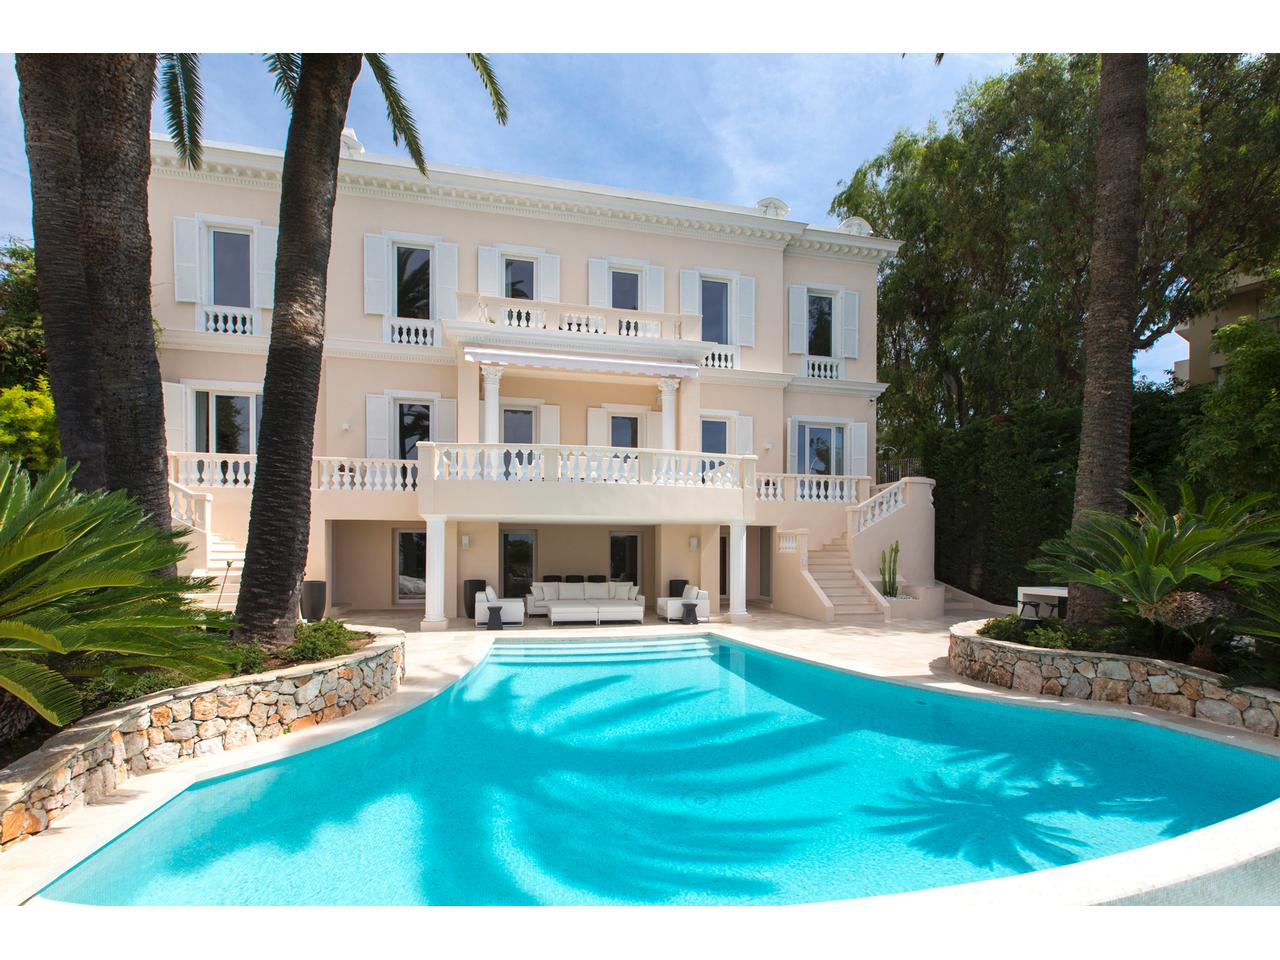 Vente maison nice immobilier nice vue mer for Appartement particulier nice